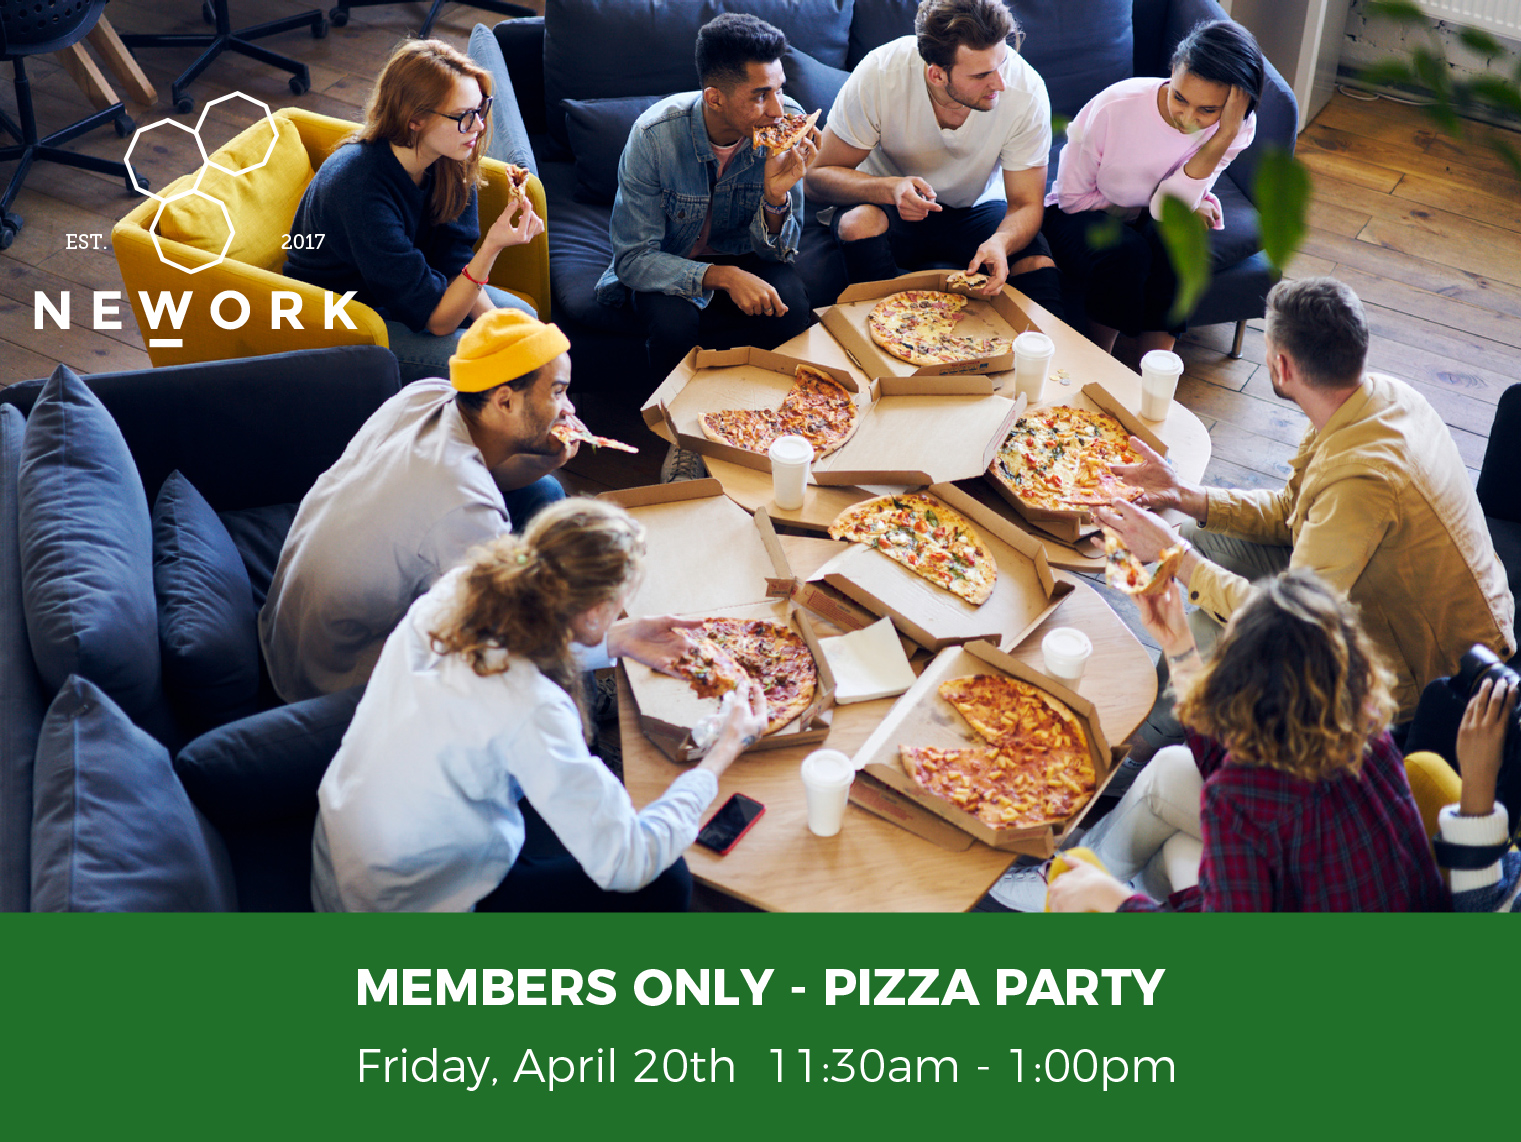 Members Only - Pizza Party